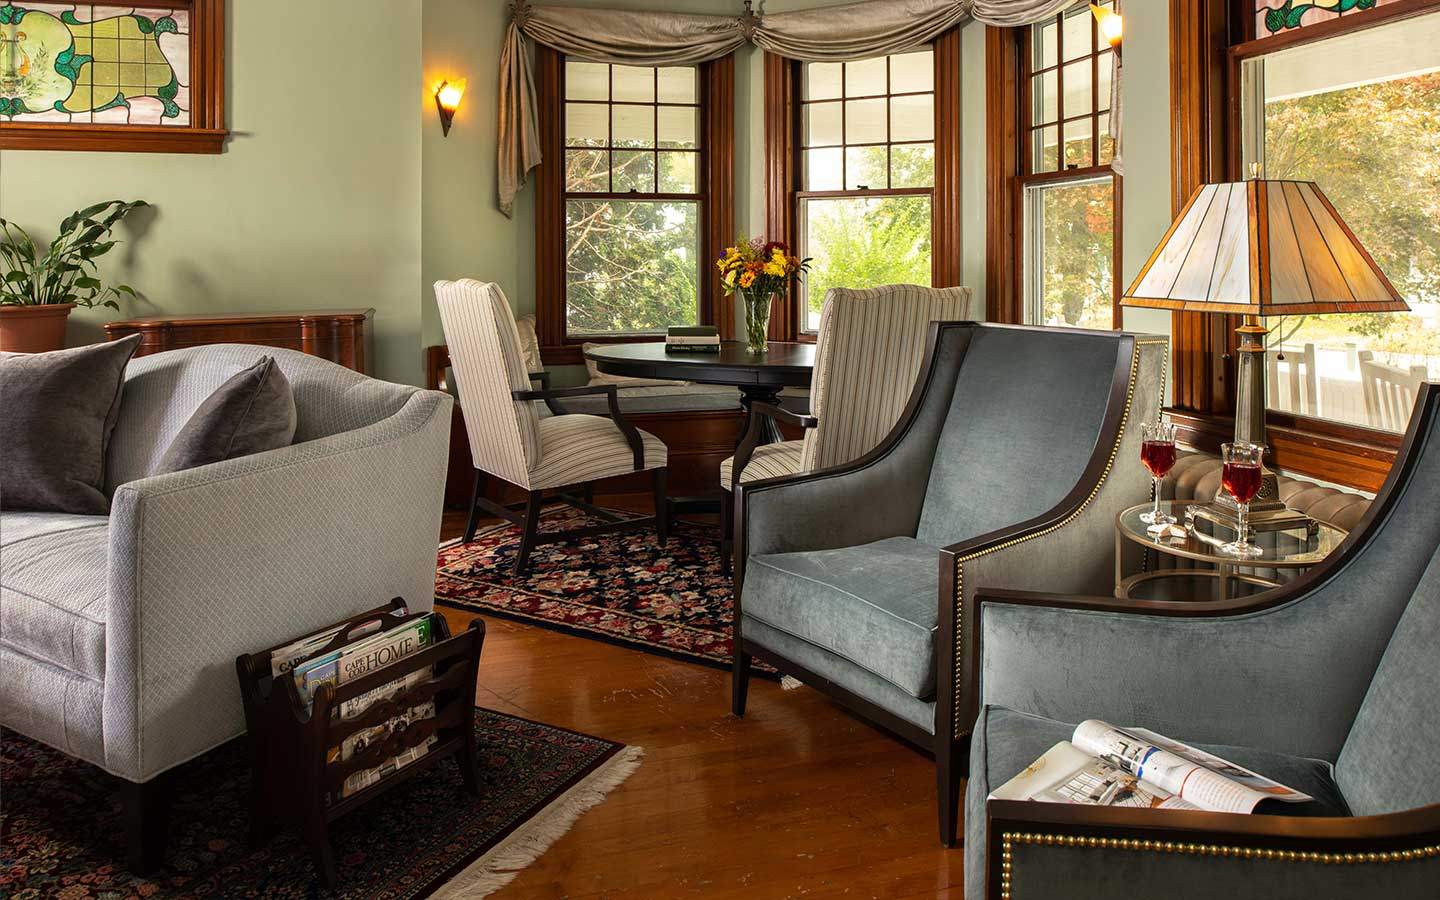 common room seating at our Cape Cod B&B in Falmouth